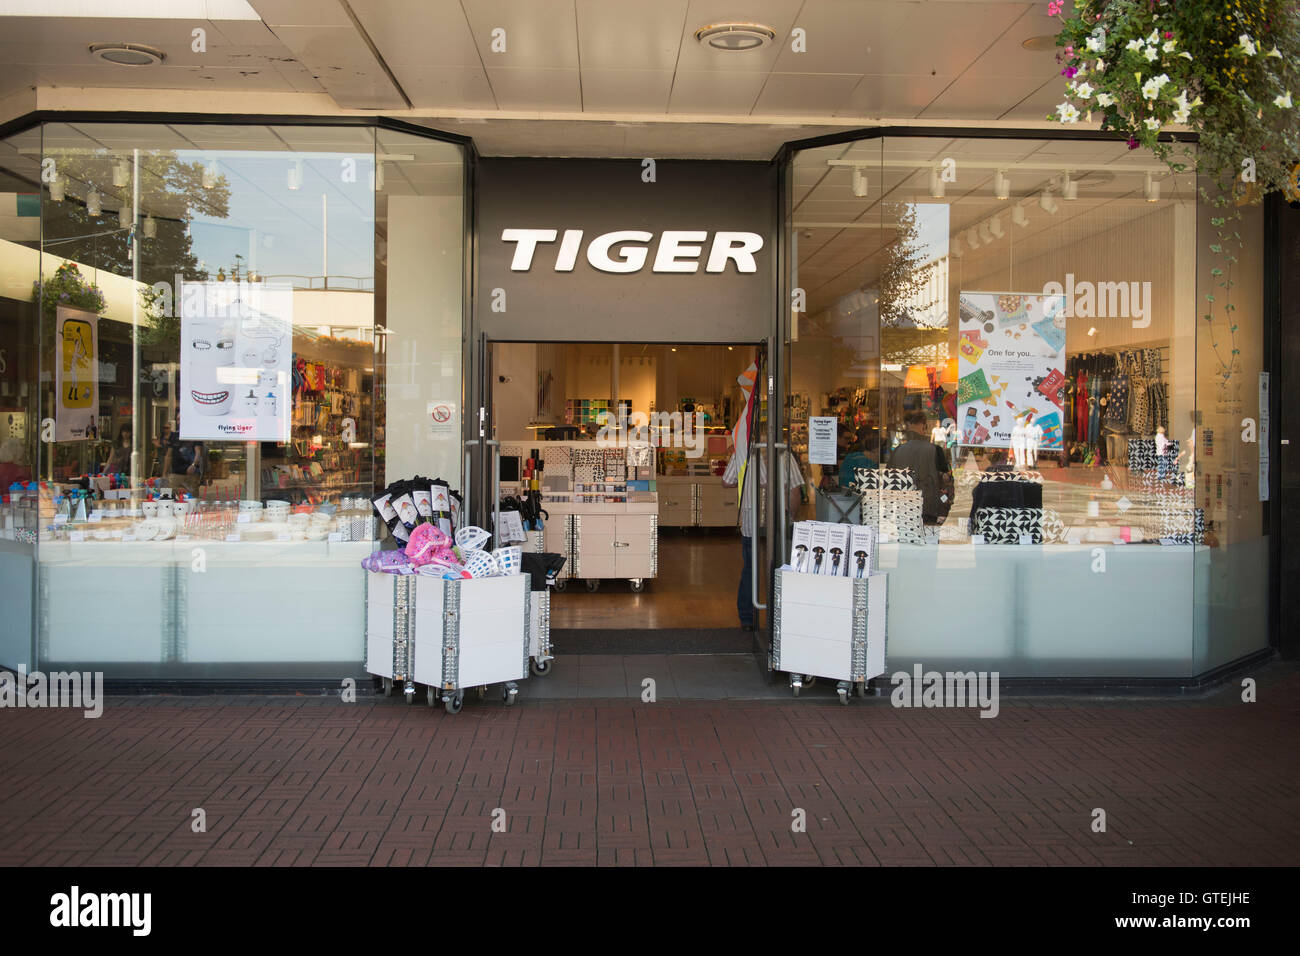 Tiger Store Stock Photos & Tiger Store Stock Images - Alamy